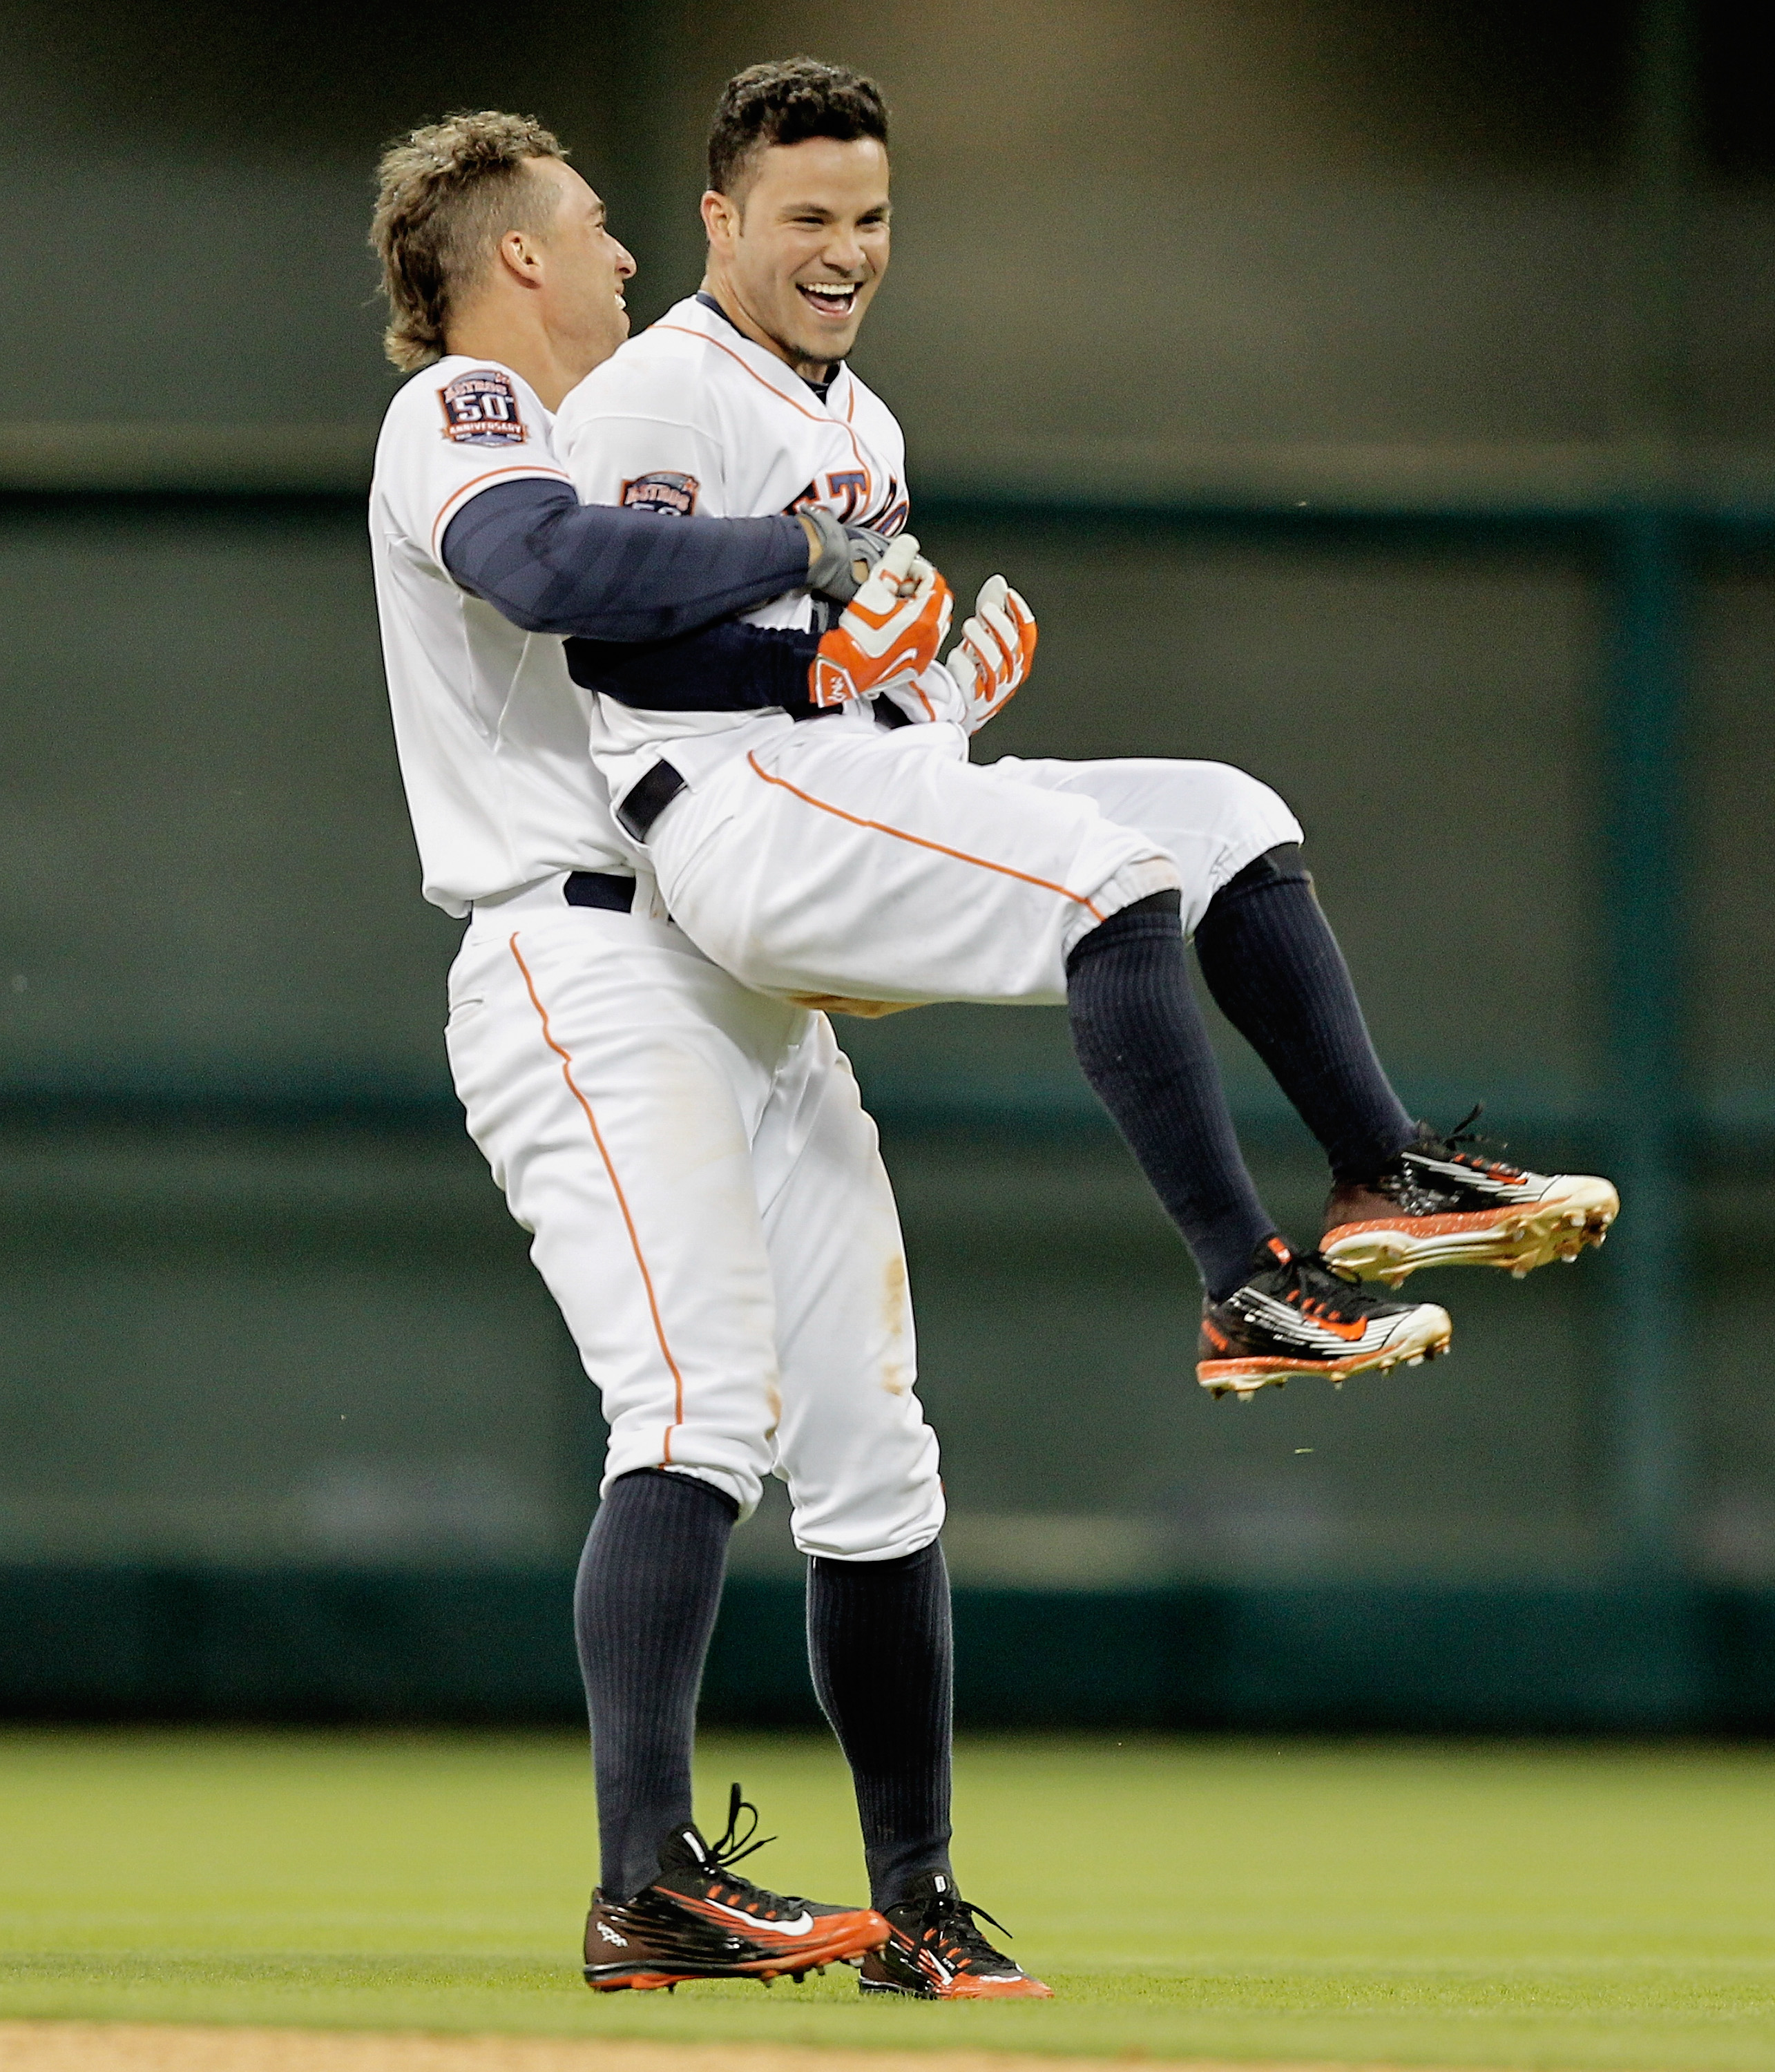 Houston Astros second baseman Jose Altuve (27), center, is grabbed by George Springer after singling in the winning run in the tenth inning against the Seattle Mariners in a baseball game Thursday April 30, 2015 in Houston. Houston won 3-2. (AP Photo/Bob